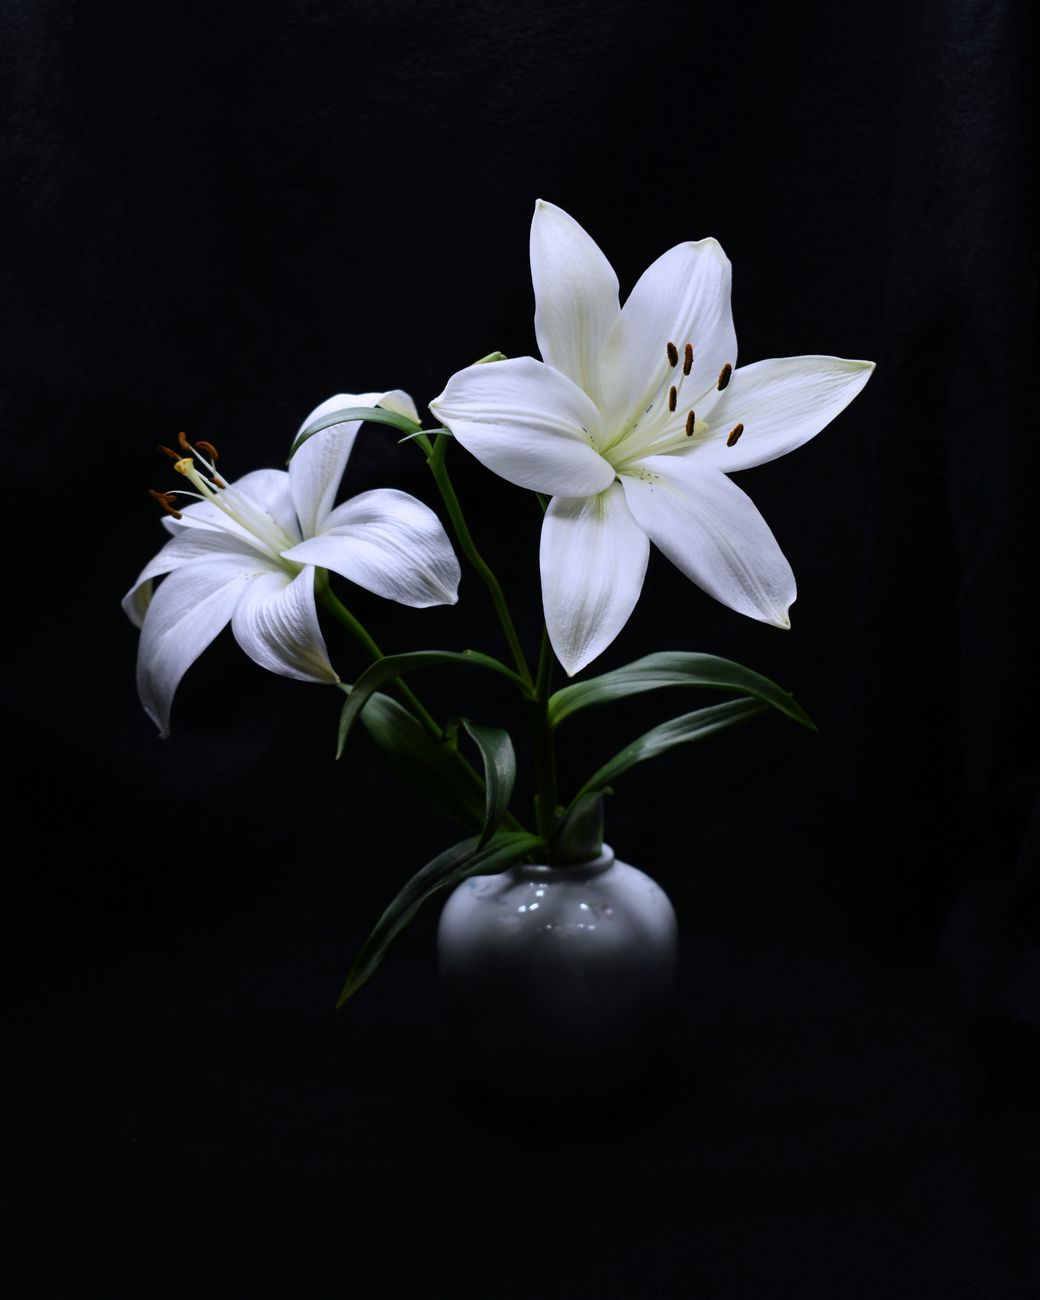 Two white and a vase